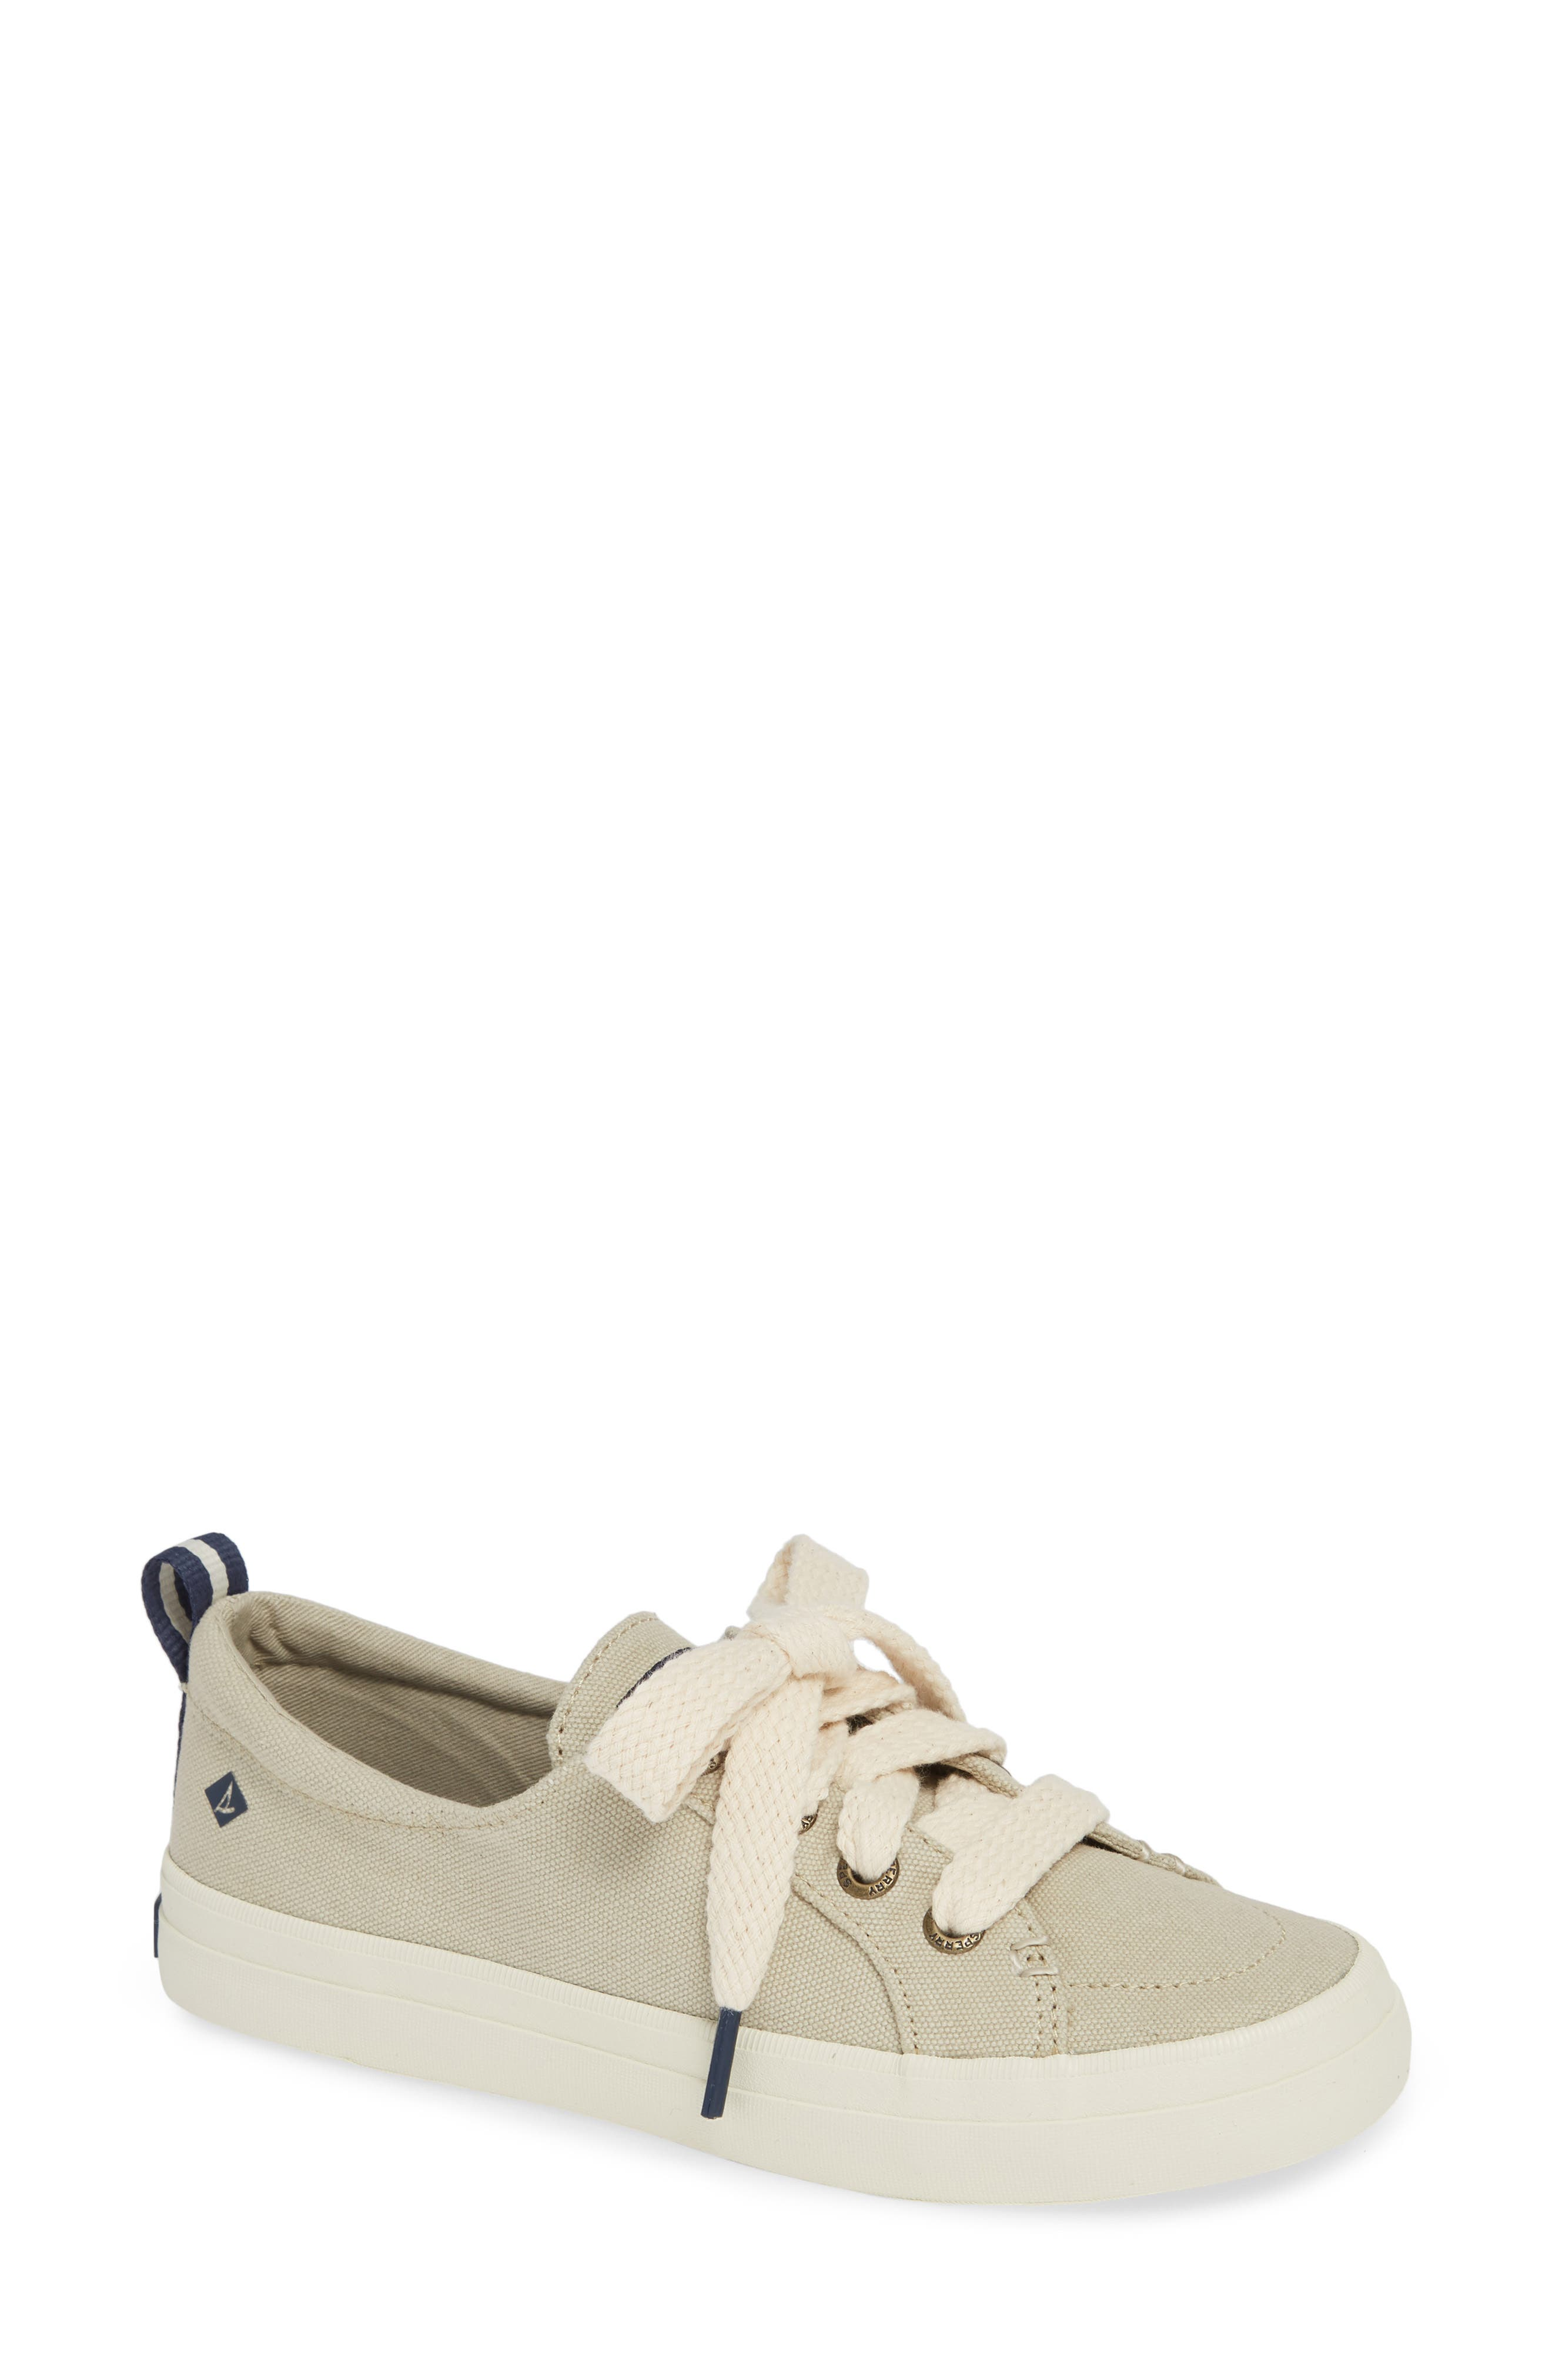 Crest Vibe Sneaker,                         Main,                         color, IVORY CANVAS